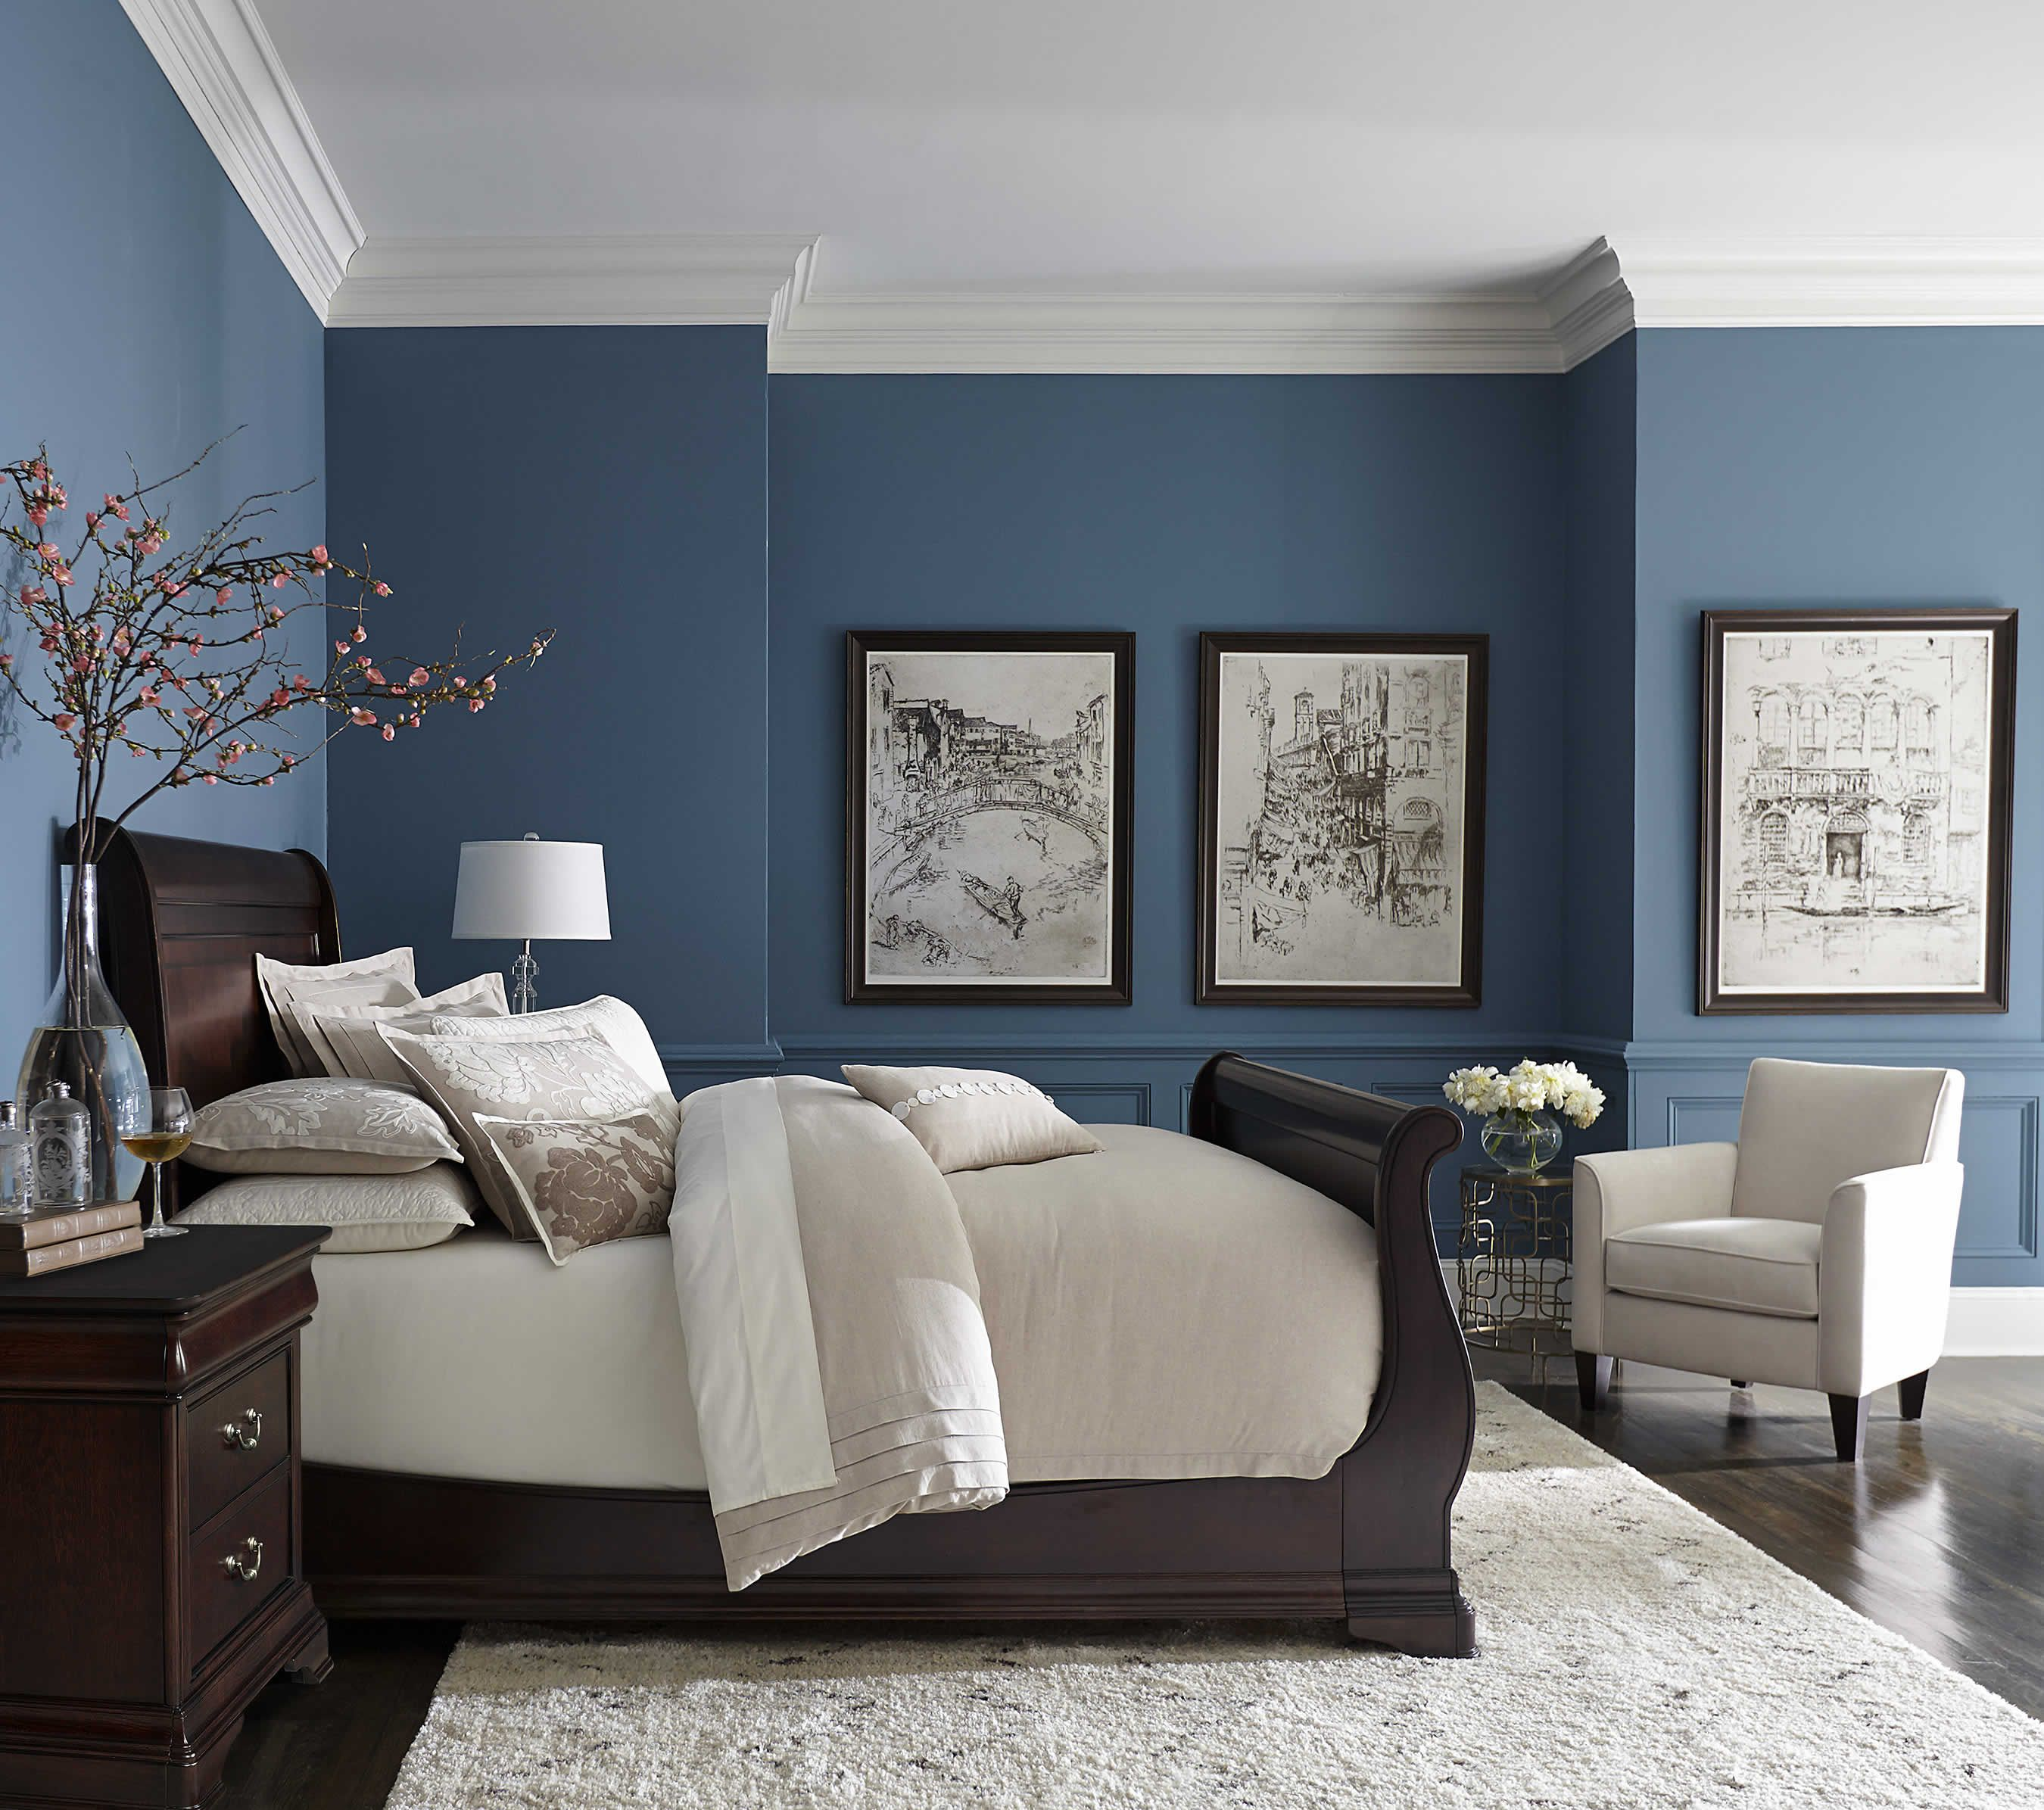 pretty blue color with white crown molding home pinterest blue colors crown and bedrooms. Black Bedroom Furniture Sets. Home Design Ideas